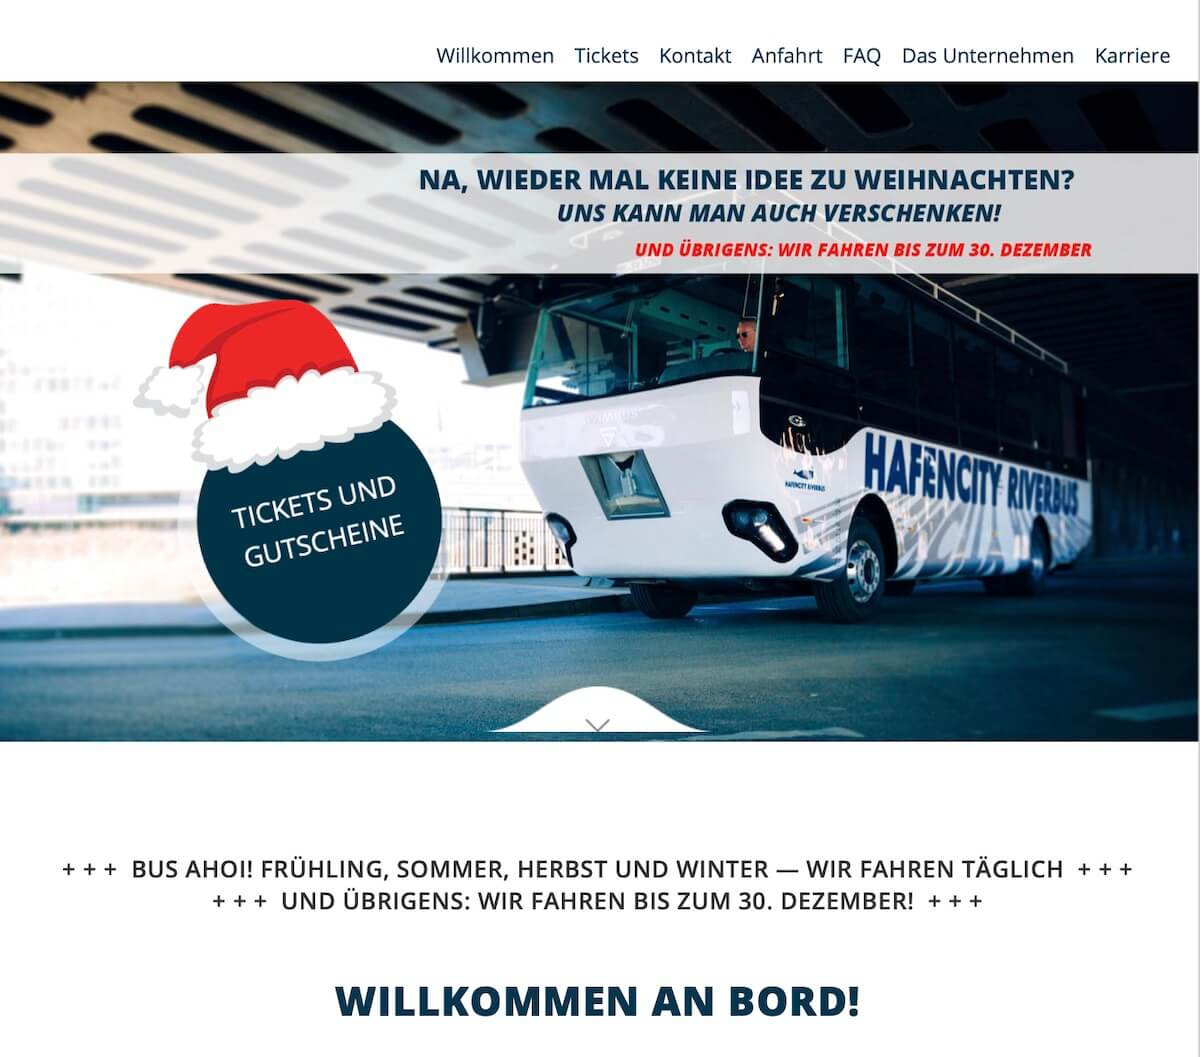 bookingkit-marketing-weihnachten-beispiel-Hafencity-Riverbus